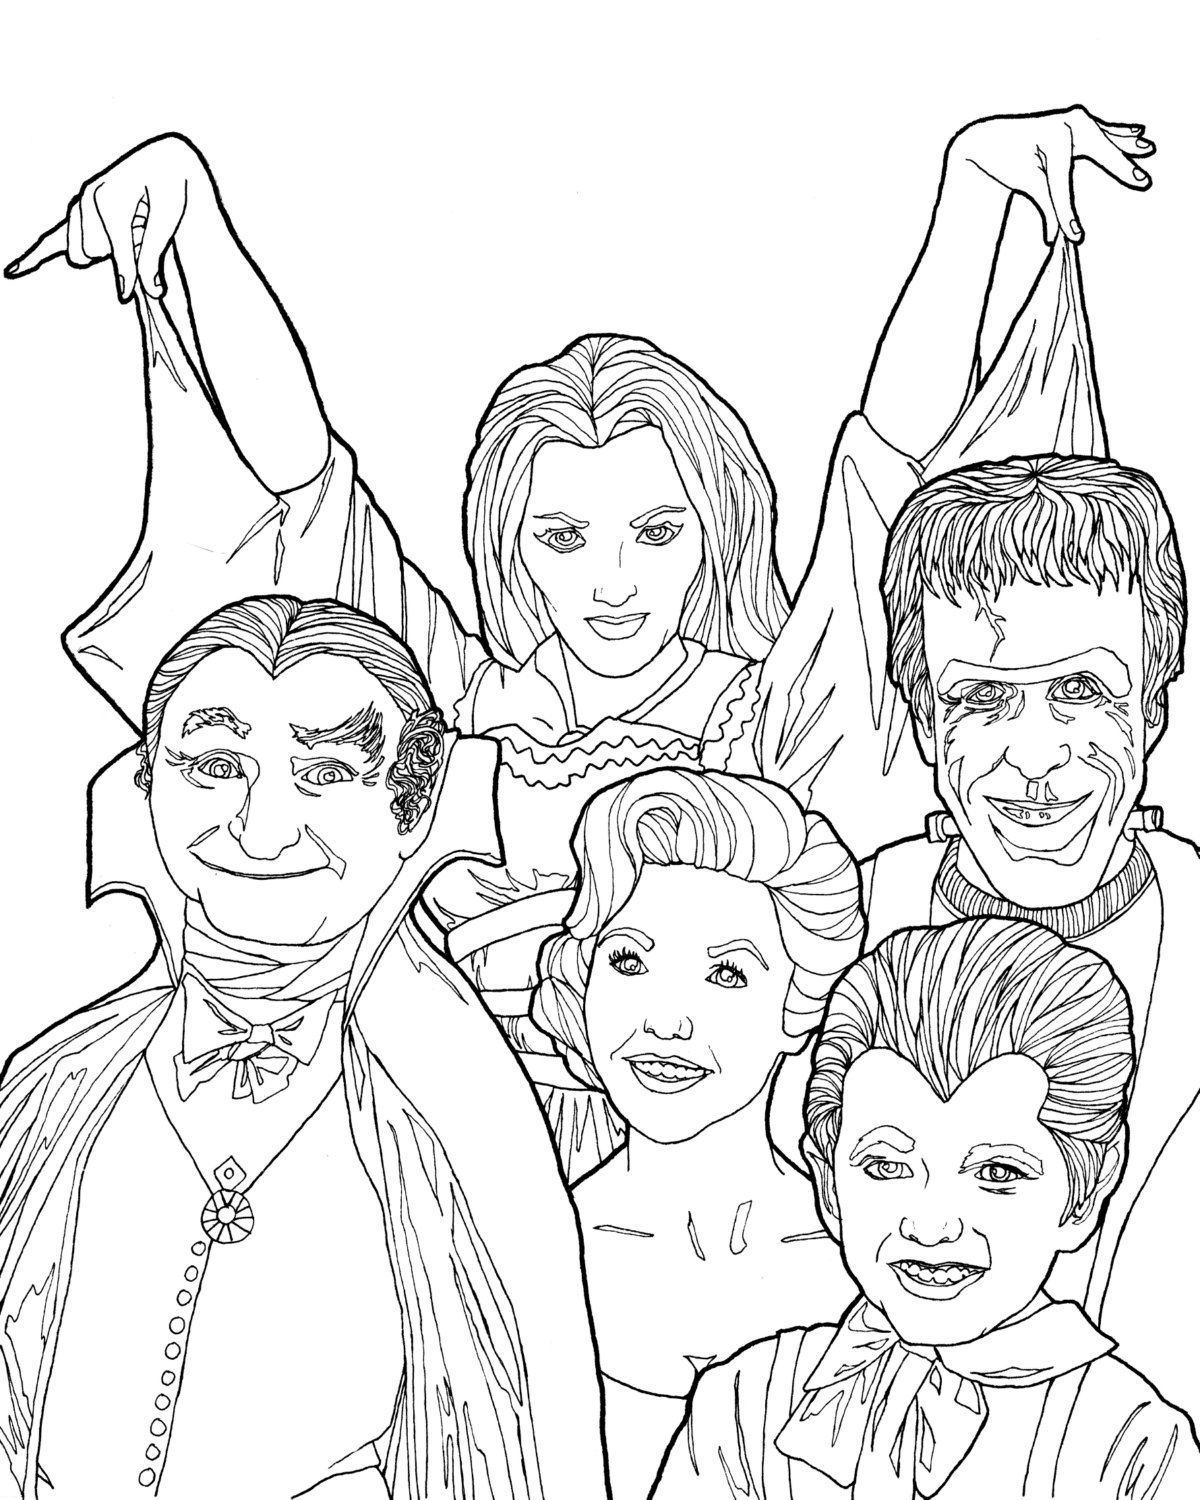 Coloring book pages halloween - Digital Download Munsters Coloring Book Page Halloween Coloring Book Pages